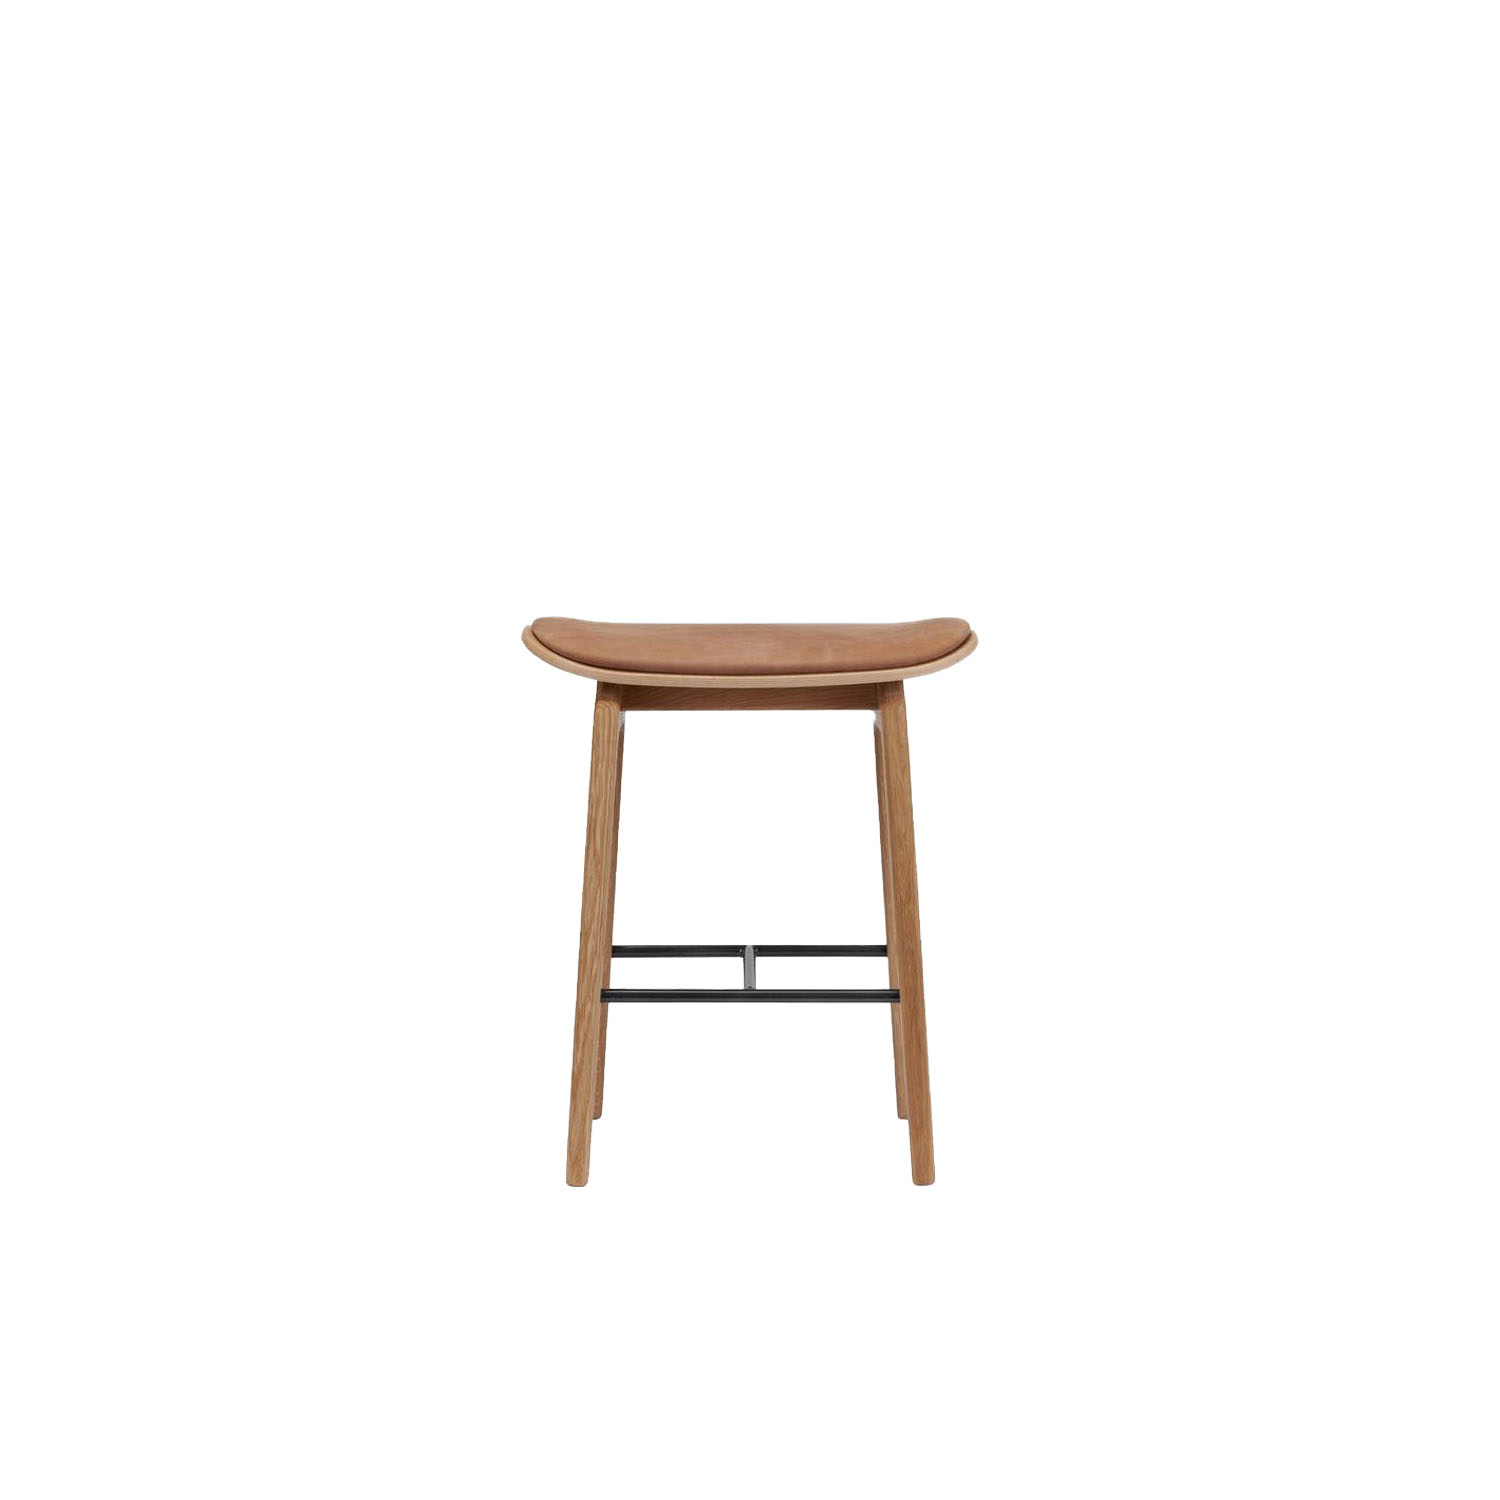 NY11 Stool Upholstered - The NY11 Bar Stool has a frame hand-crafted from solid white oak and a seat of laminated oak veneer. The seat can be upholstered with a various selection of both leather & fabrics. The NY11 series is inspired by traditional Danish school chairs designed throughout the twentieth century. | Matter of Stuff